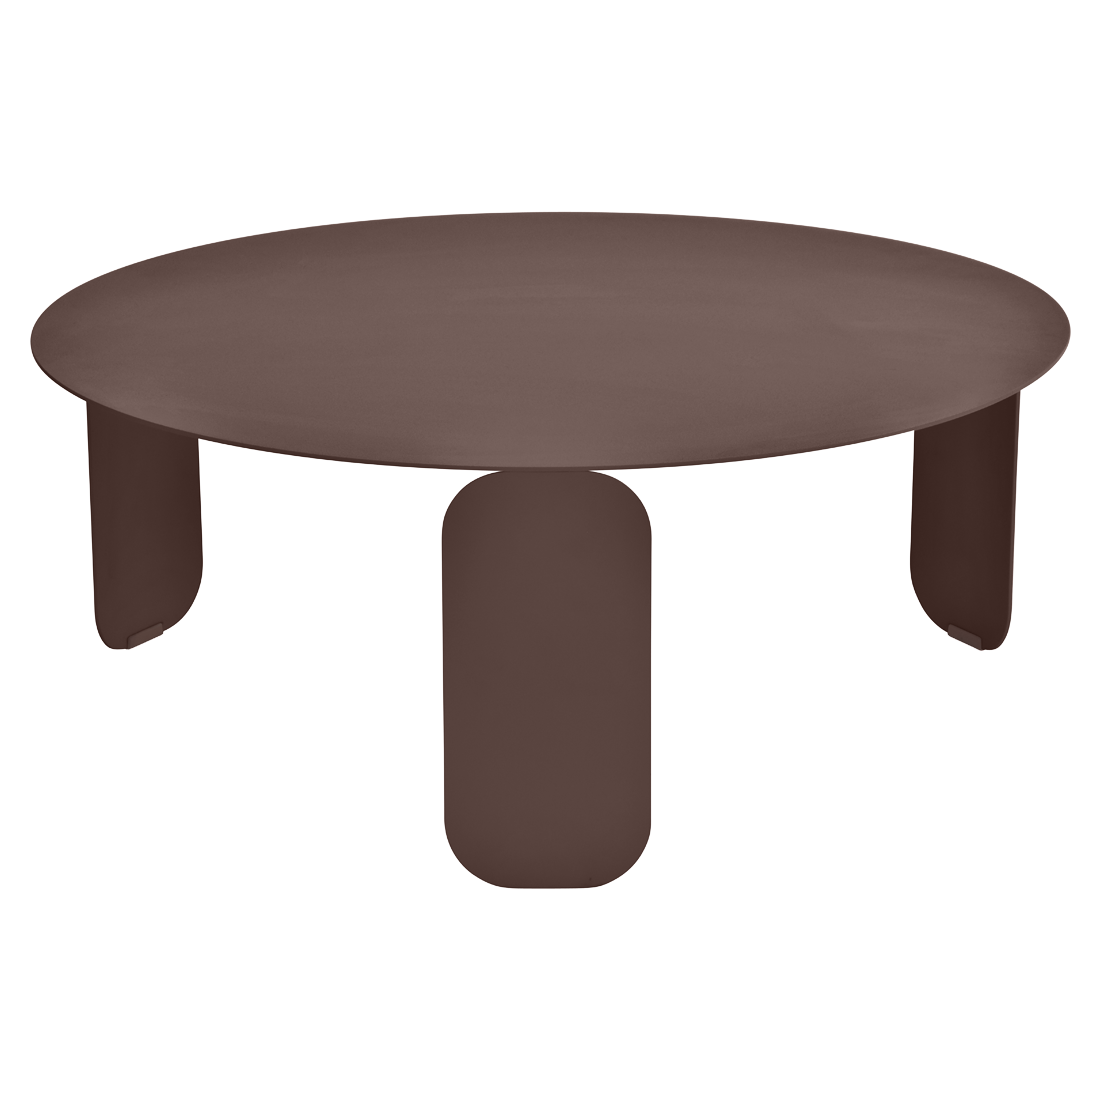 table basse metal, table basse design, table basse fermob, table basse marron